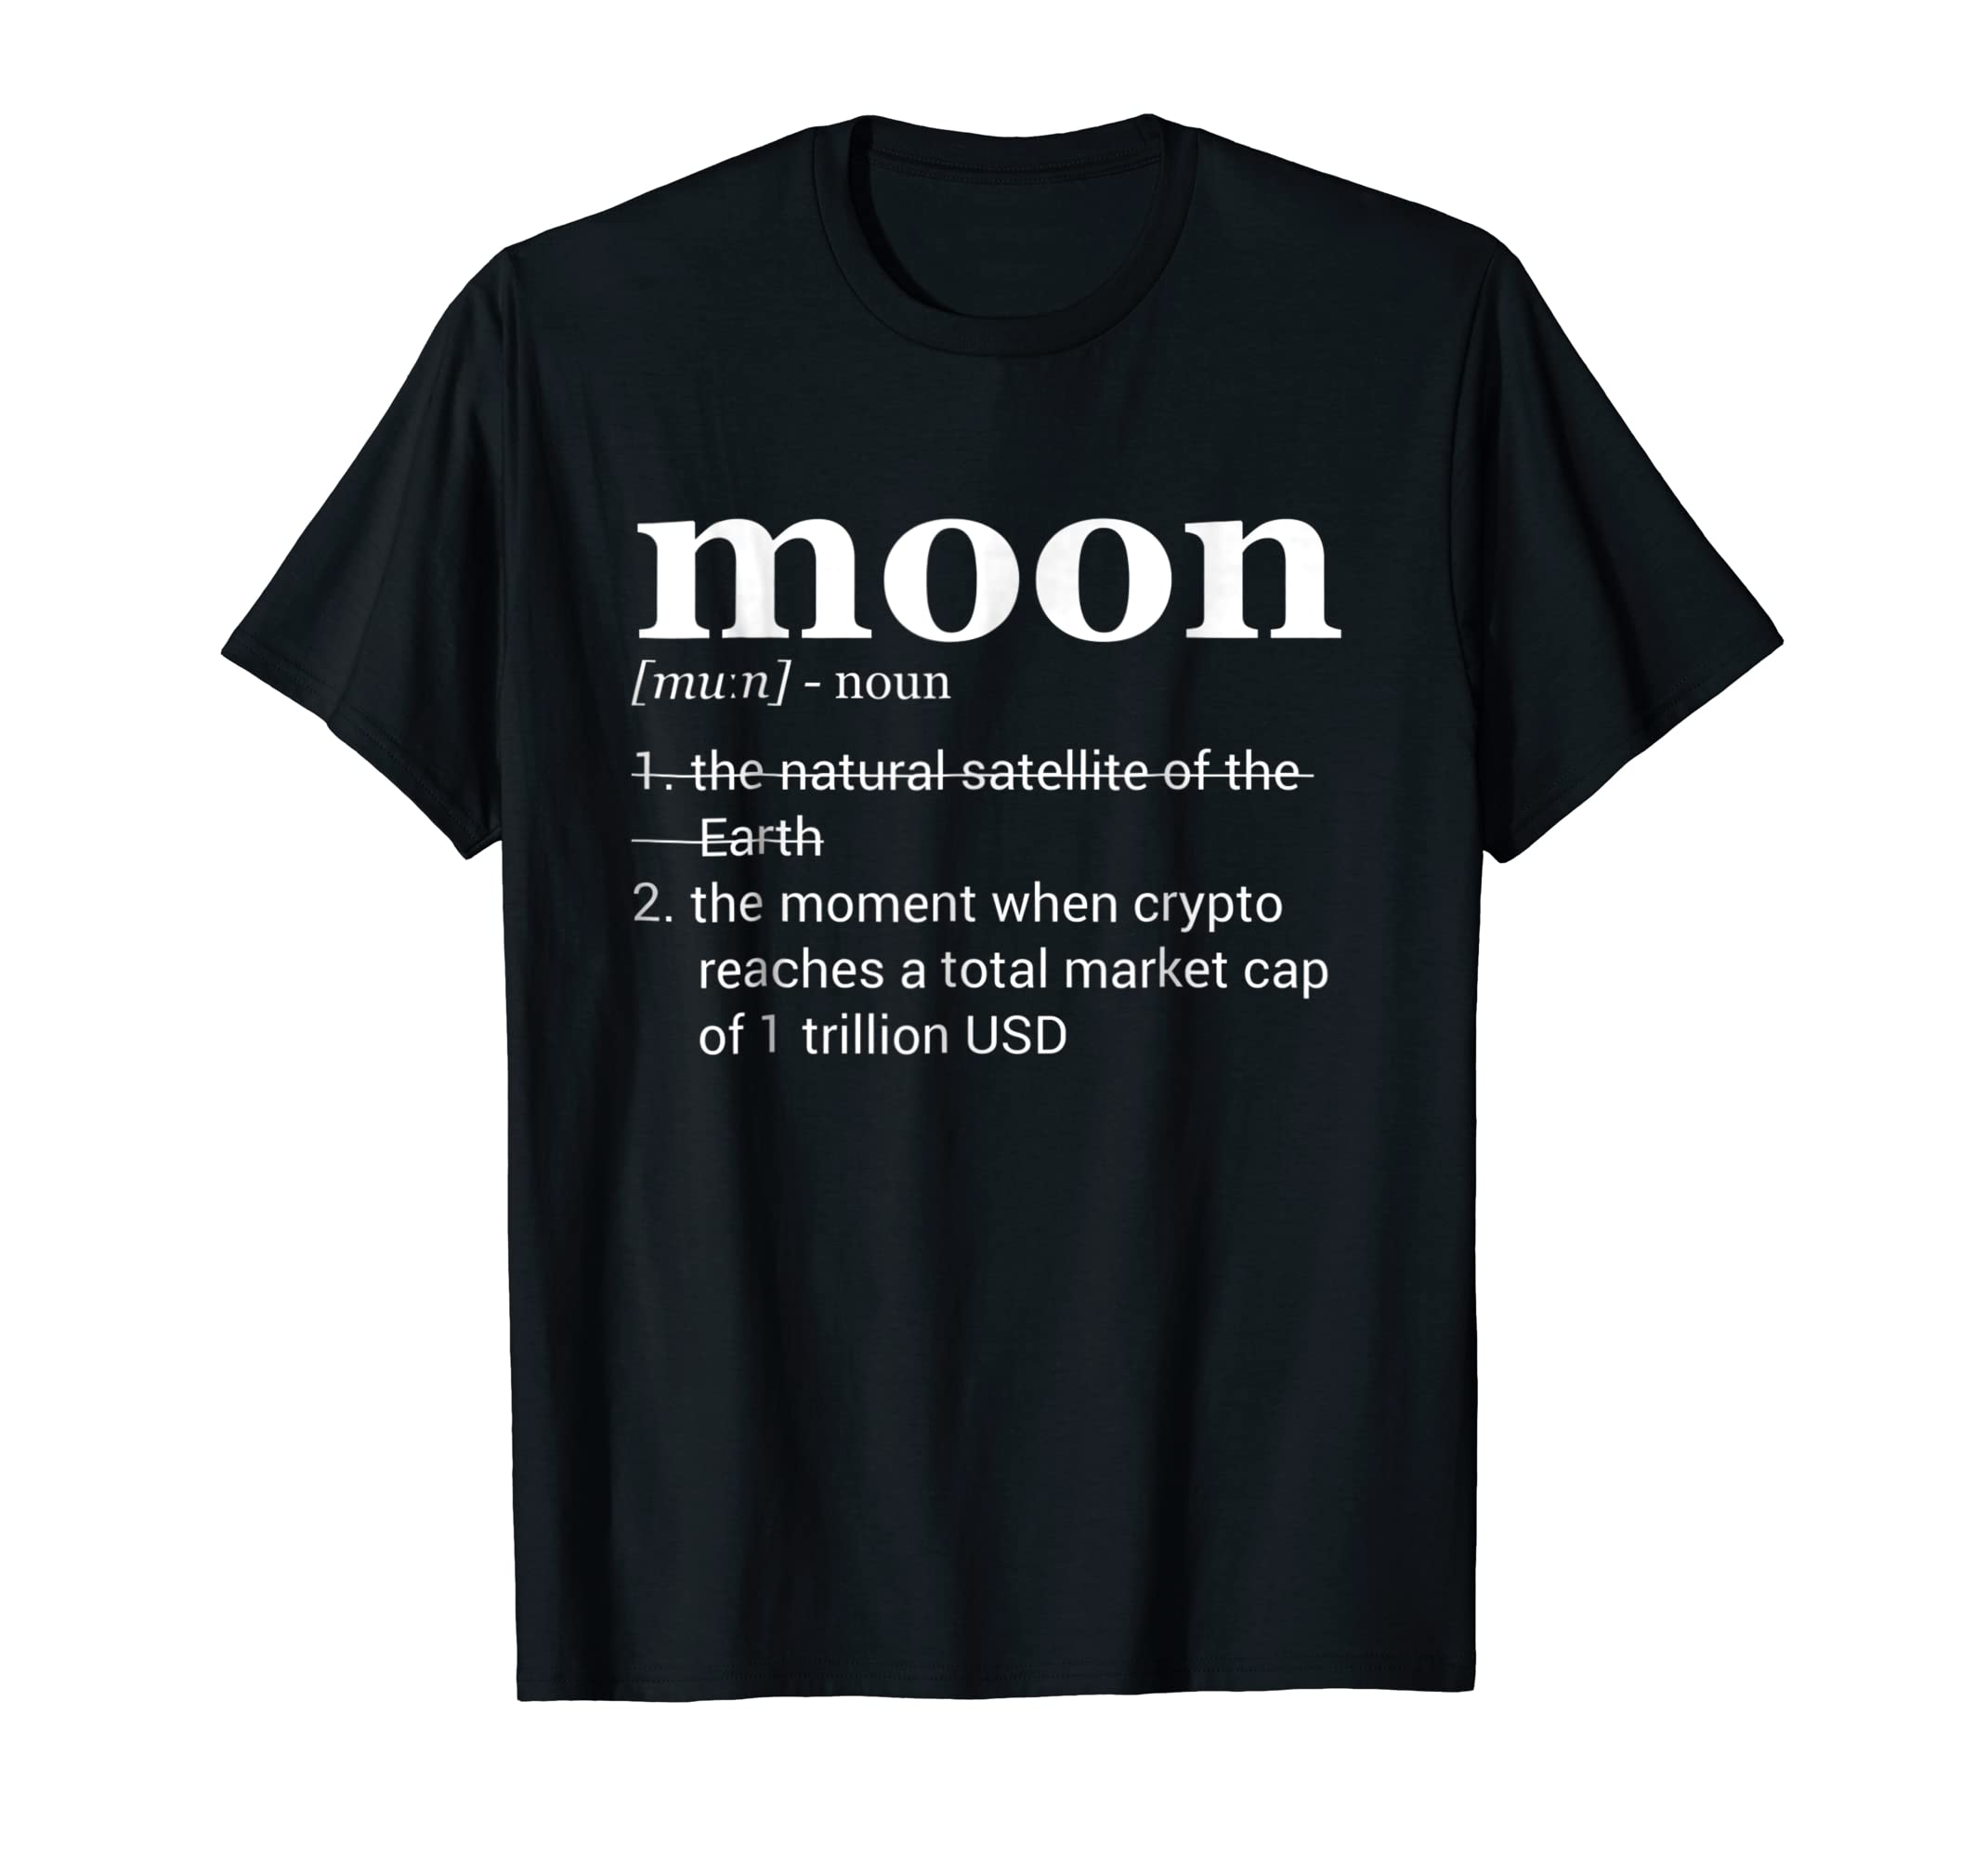 5b3570e550210 Amazon.com: Cryptocurrency Moon Definition T-Shirt - Funny Crypto Tee:  Clothing